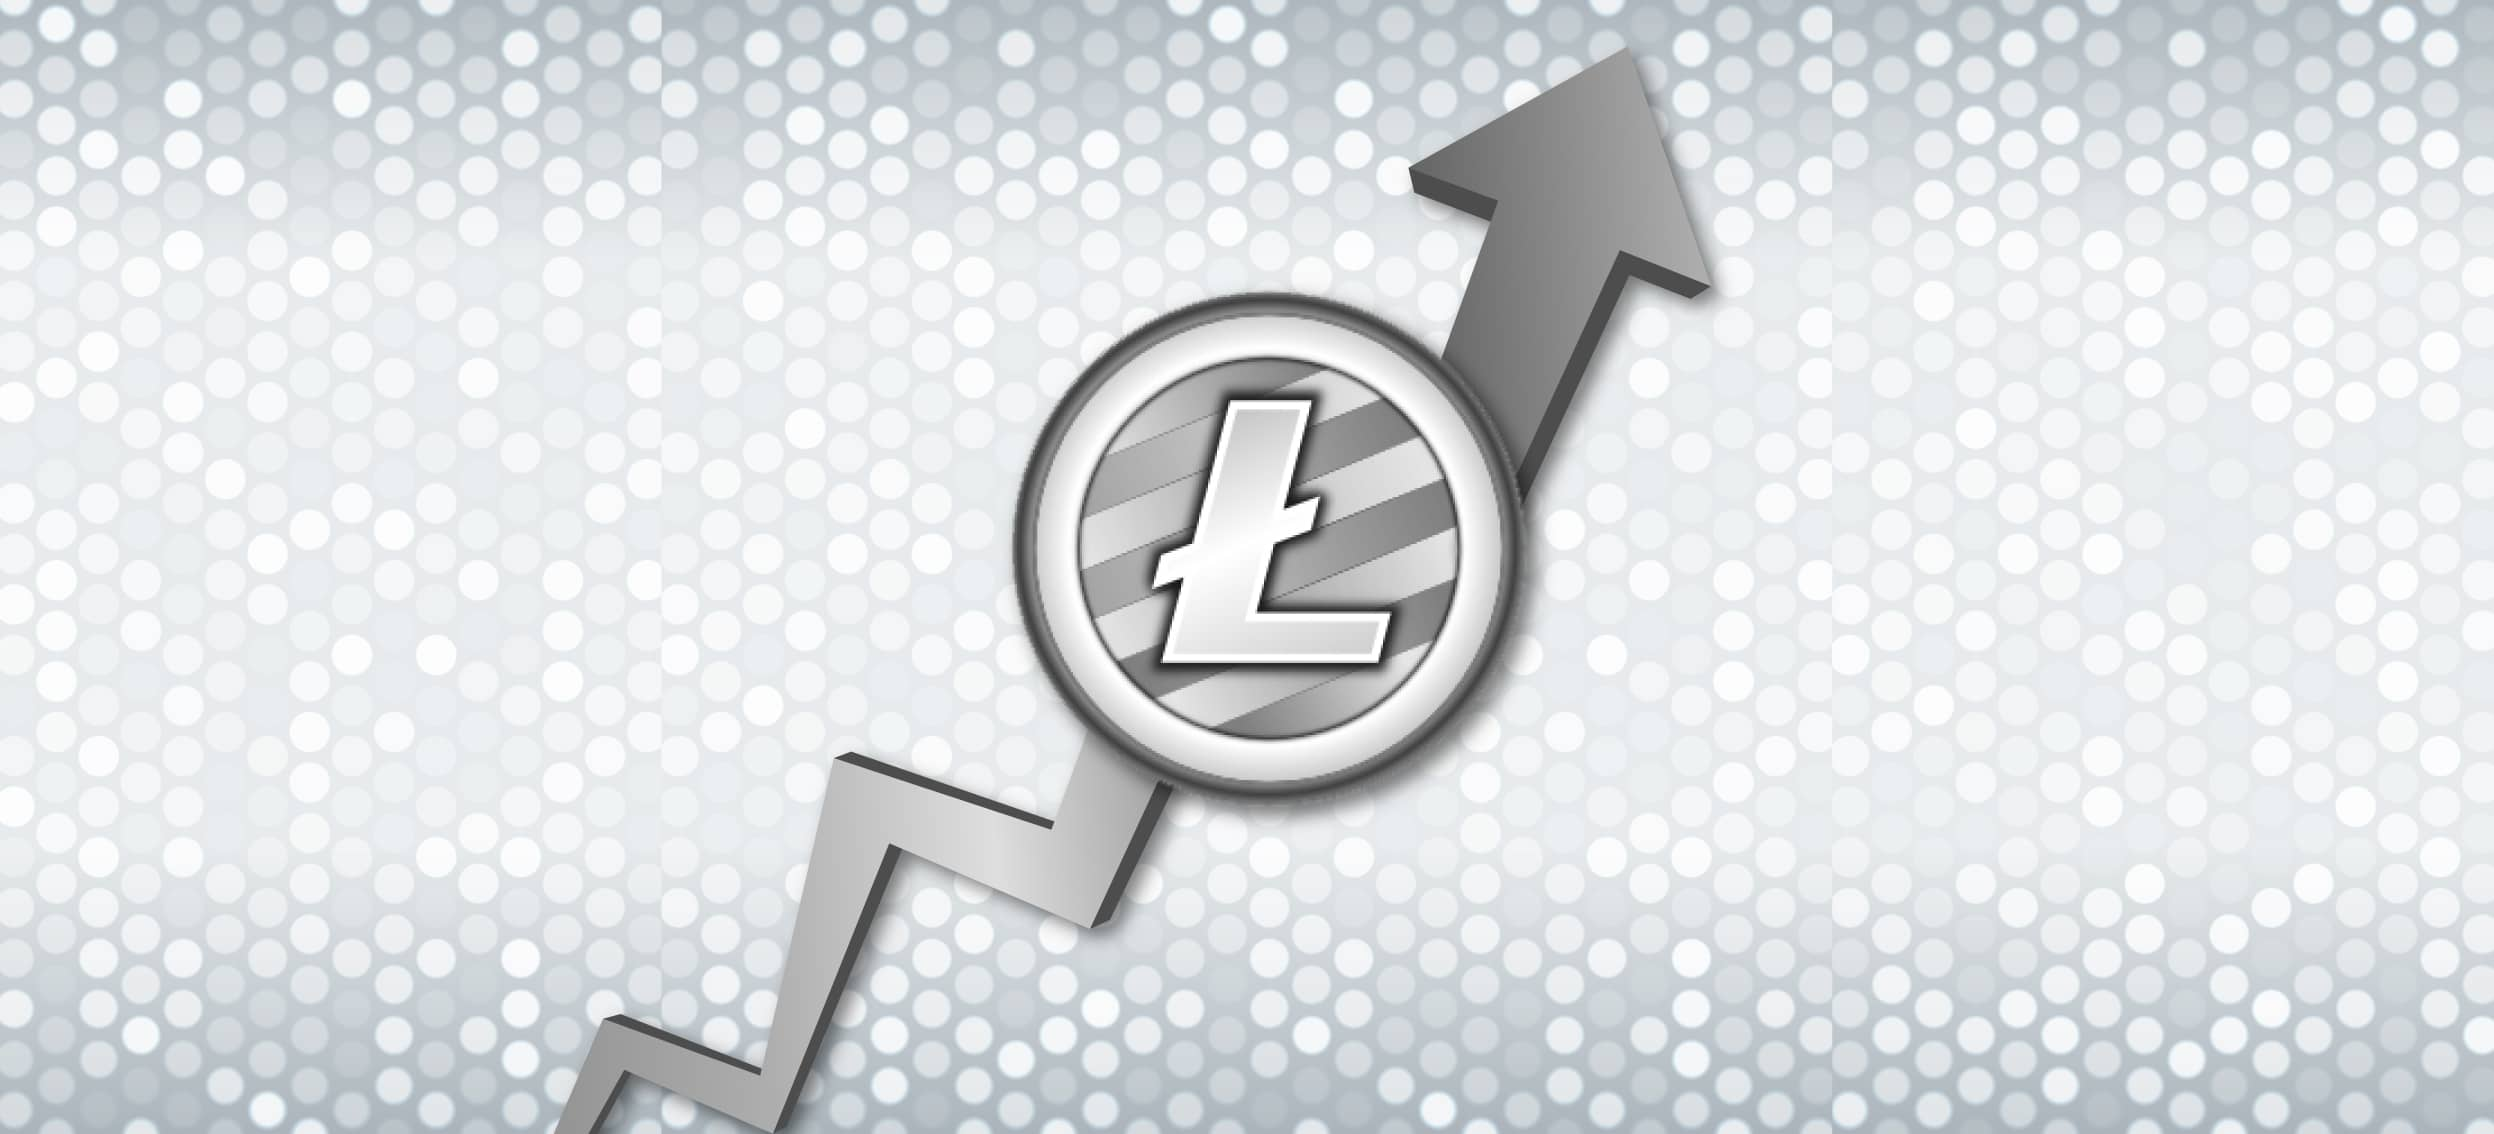 Litecoin Price Analysis – LTCUSD $140 Price Level Remains Unbroken